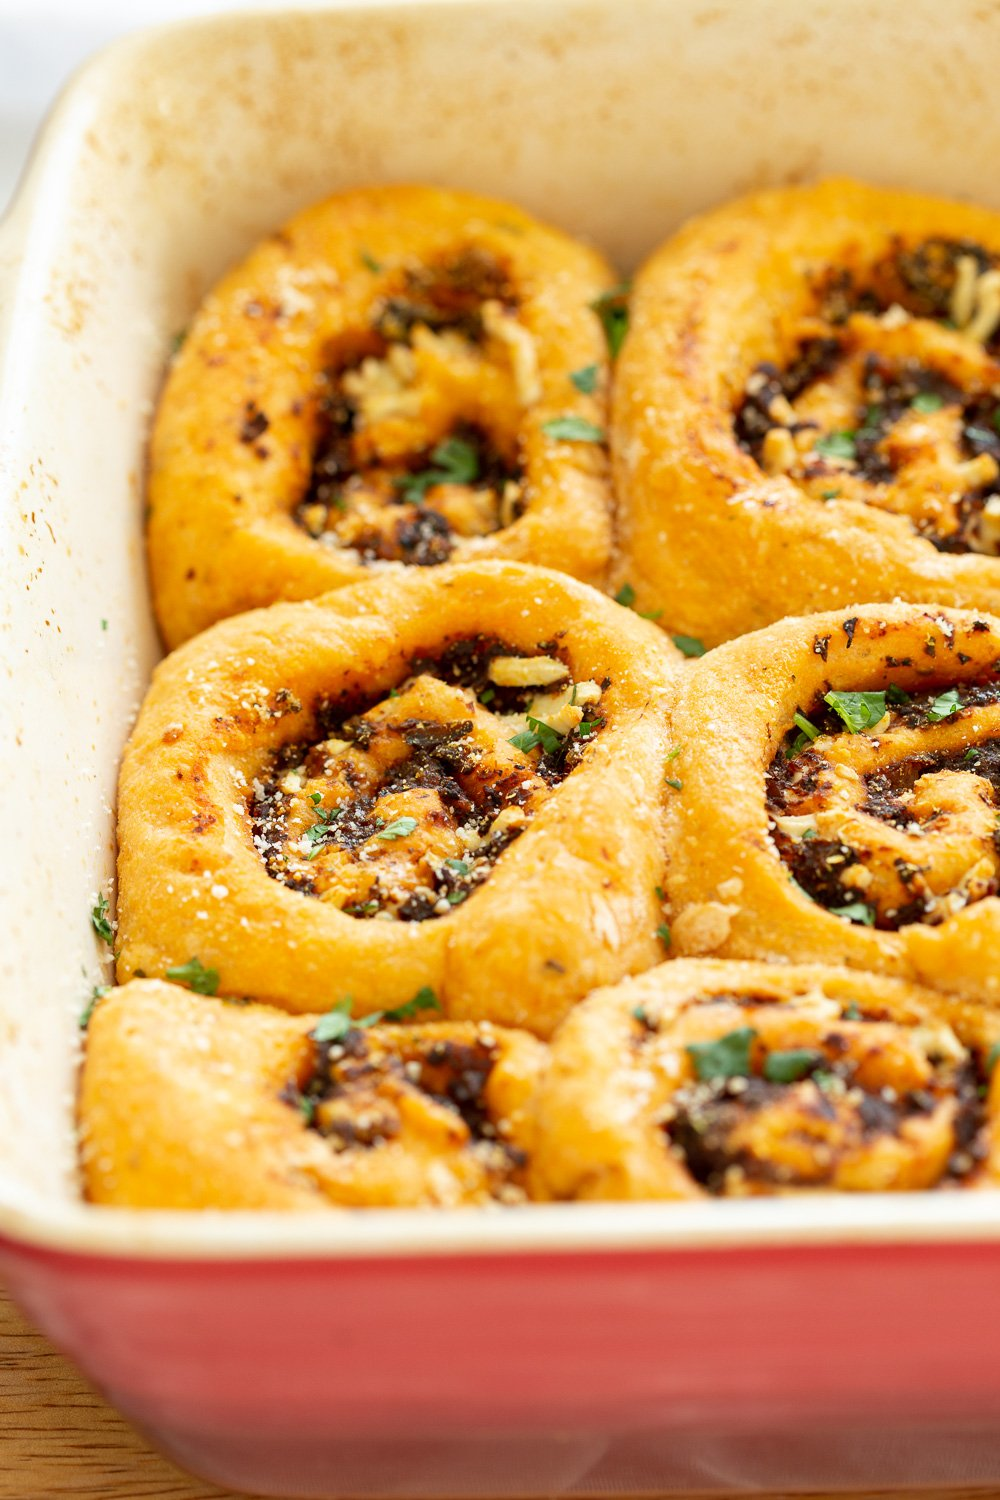 Vegan Pizza Rolls. Easy Pizza dough stuffed with herbed mushroom tomato filling, rolled, sliced and baked. Delicious snack or appetizer! #Vegan #Soyfree #Nutfree #Recipe #Veganpizzarolls #VeganRicha